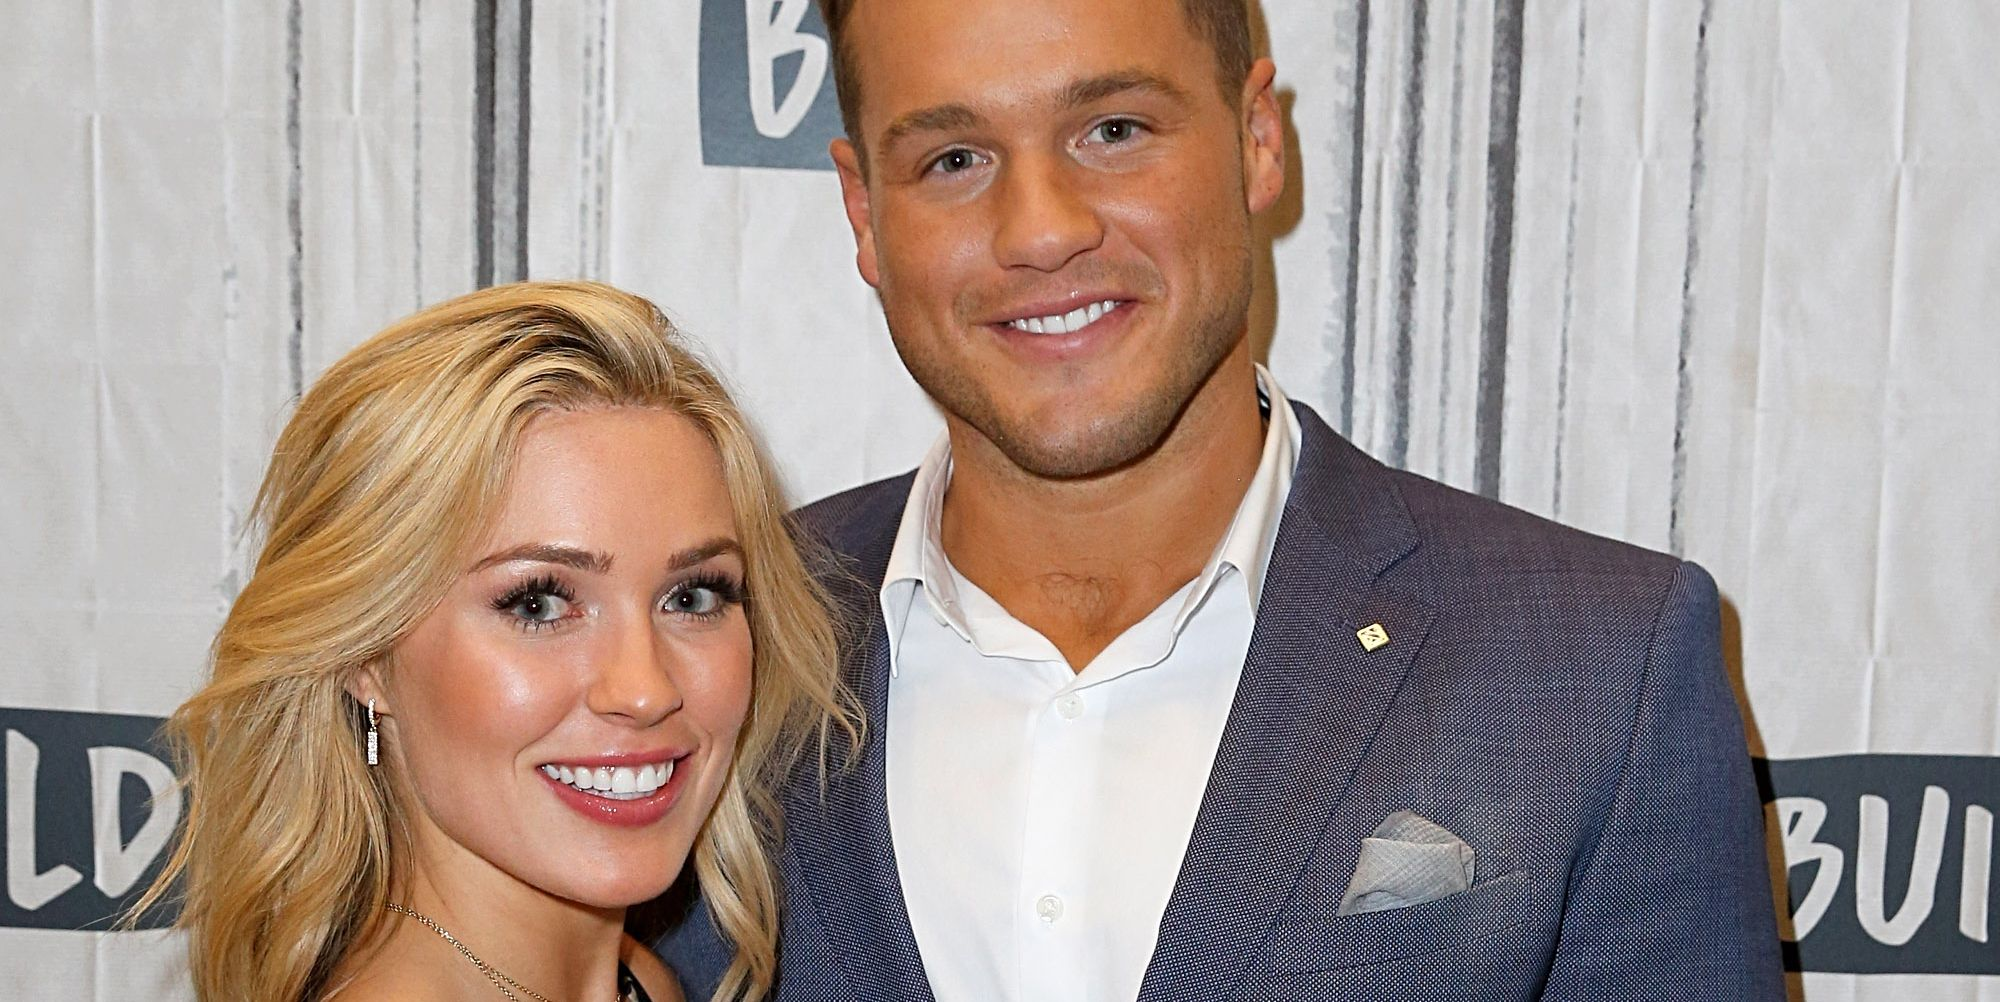 What Bachelor Colton Underwood And Cassie Randolph's Body